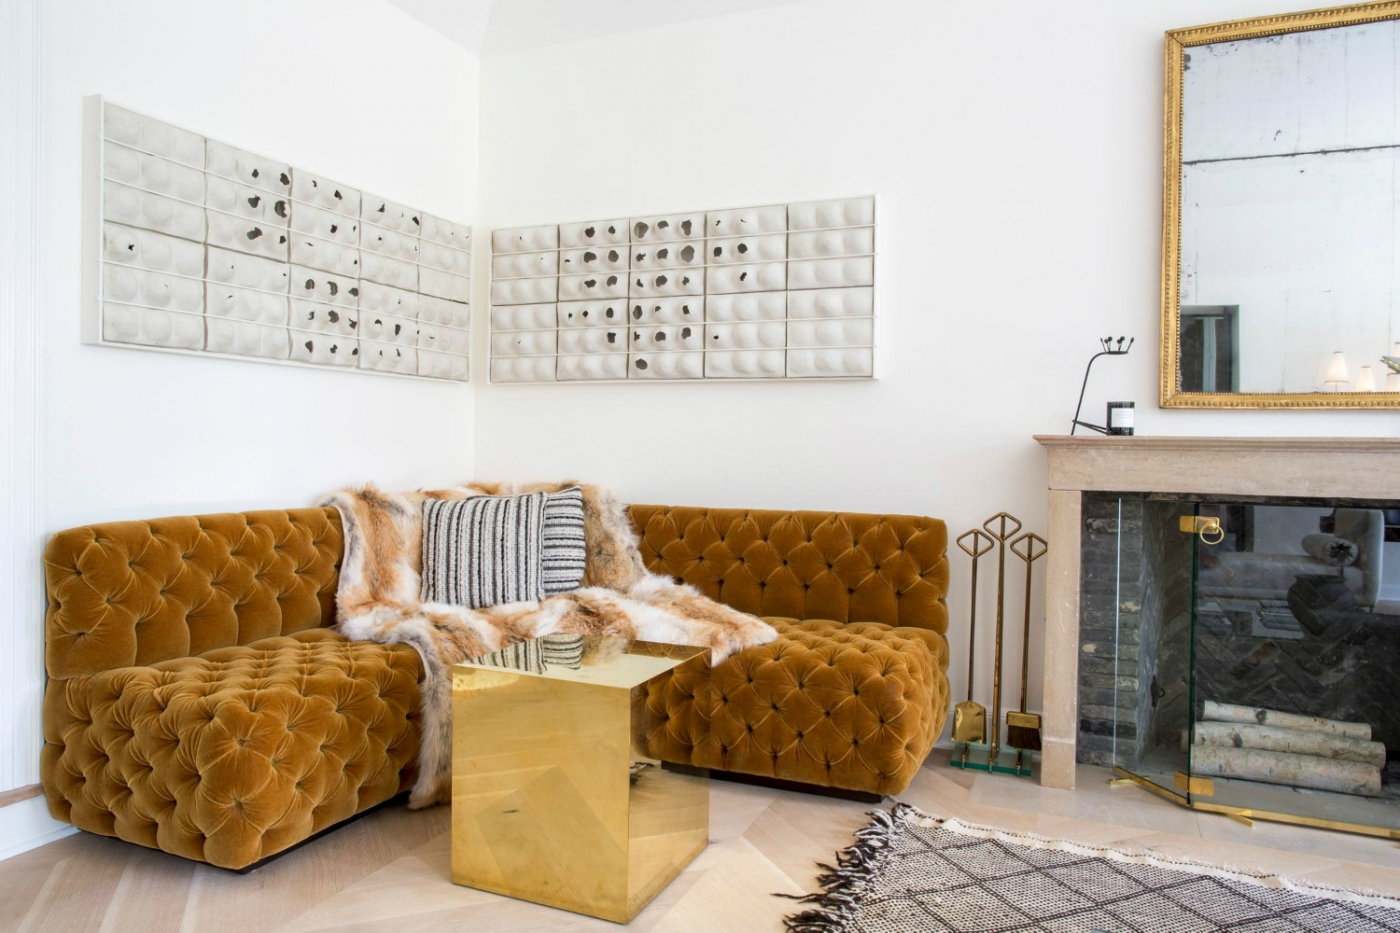 Turmeric Color One Of The Next Biggest Interior Design Trends